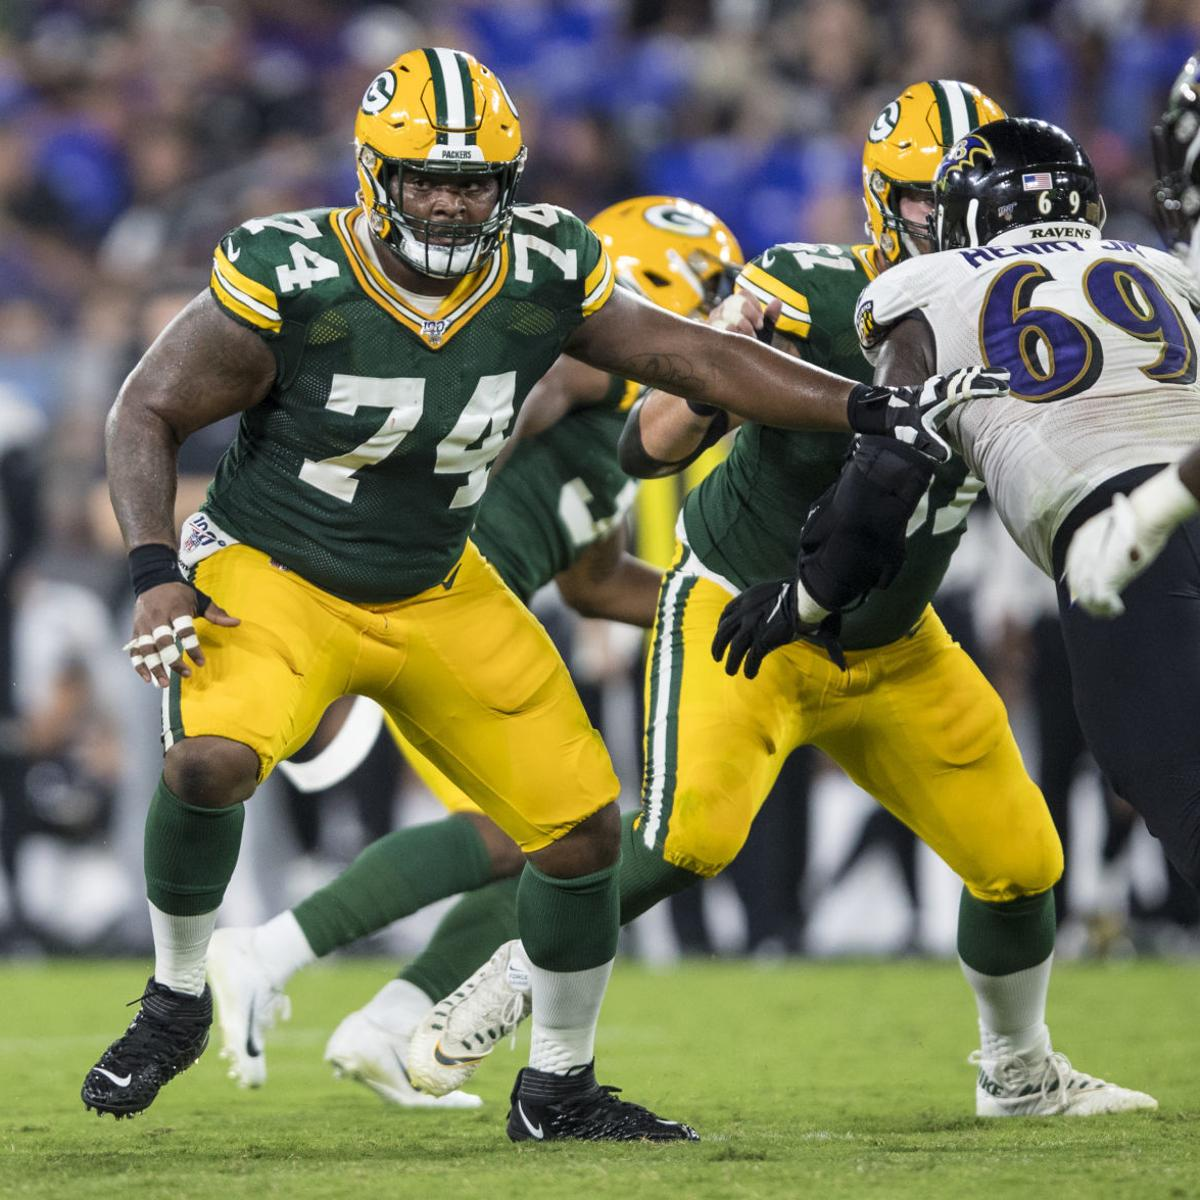 Packers: Elgton Jenkins should be considered for Rookie of the Year